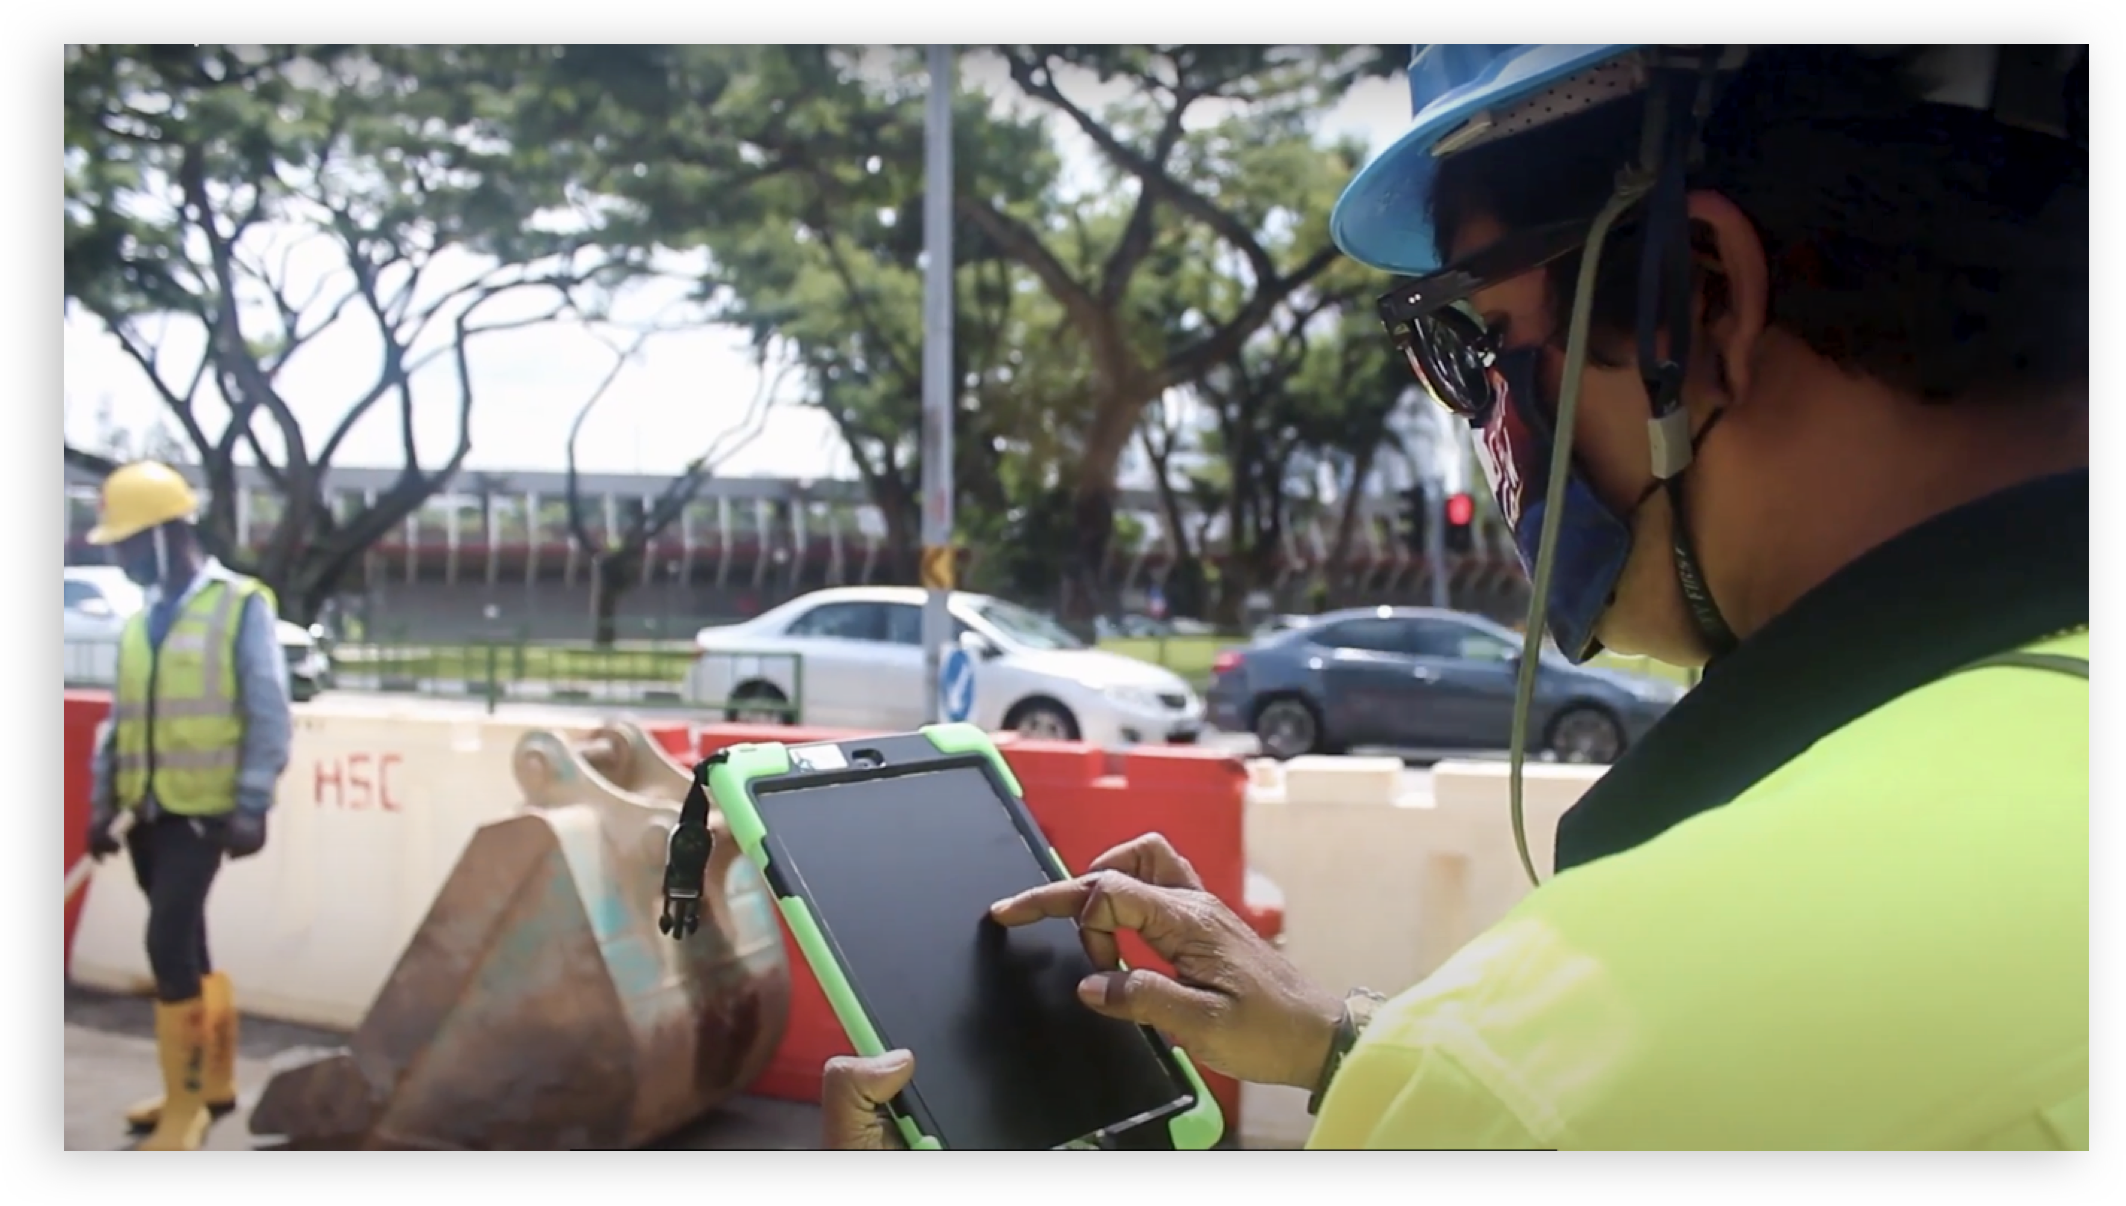 HSC brings Infrastructural Pipeline Safety to the Next Level with Digital Solutions